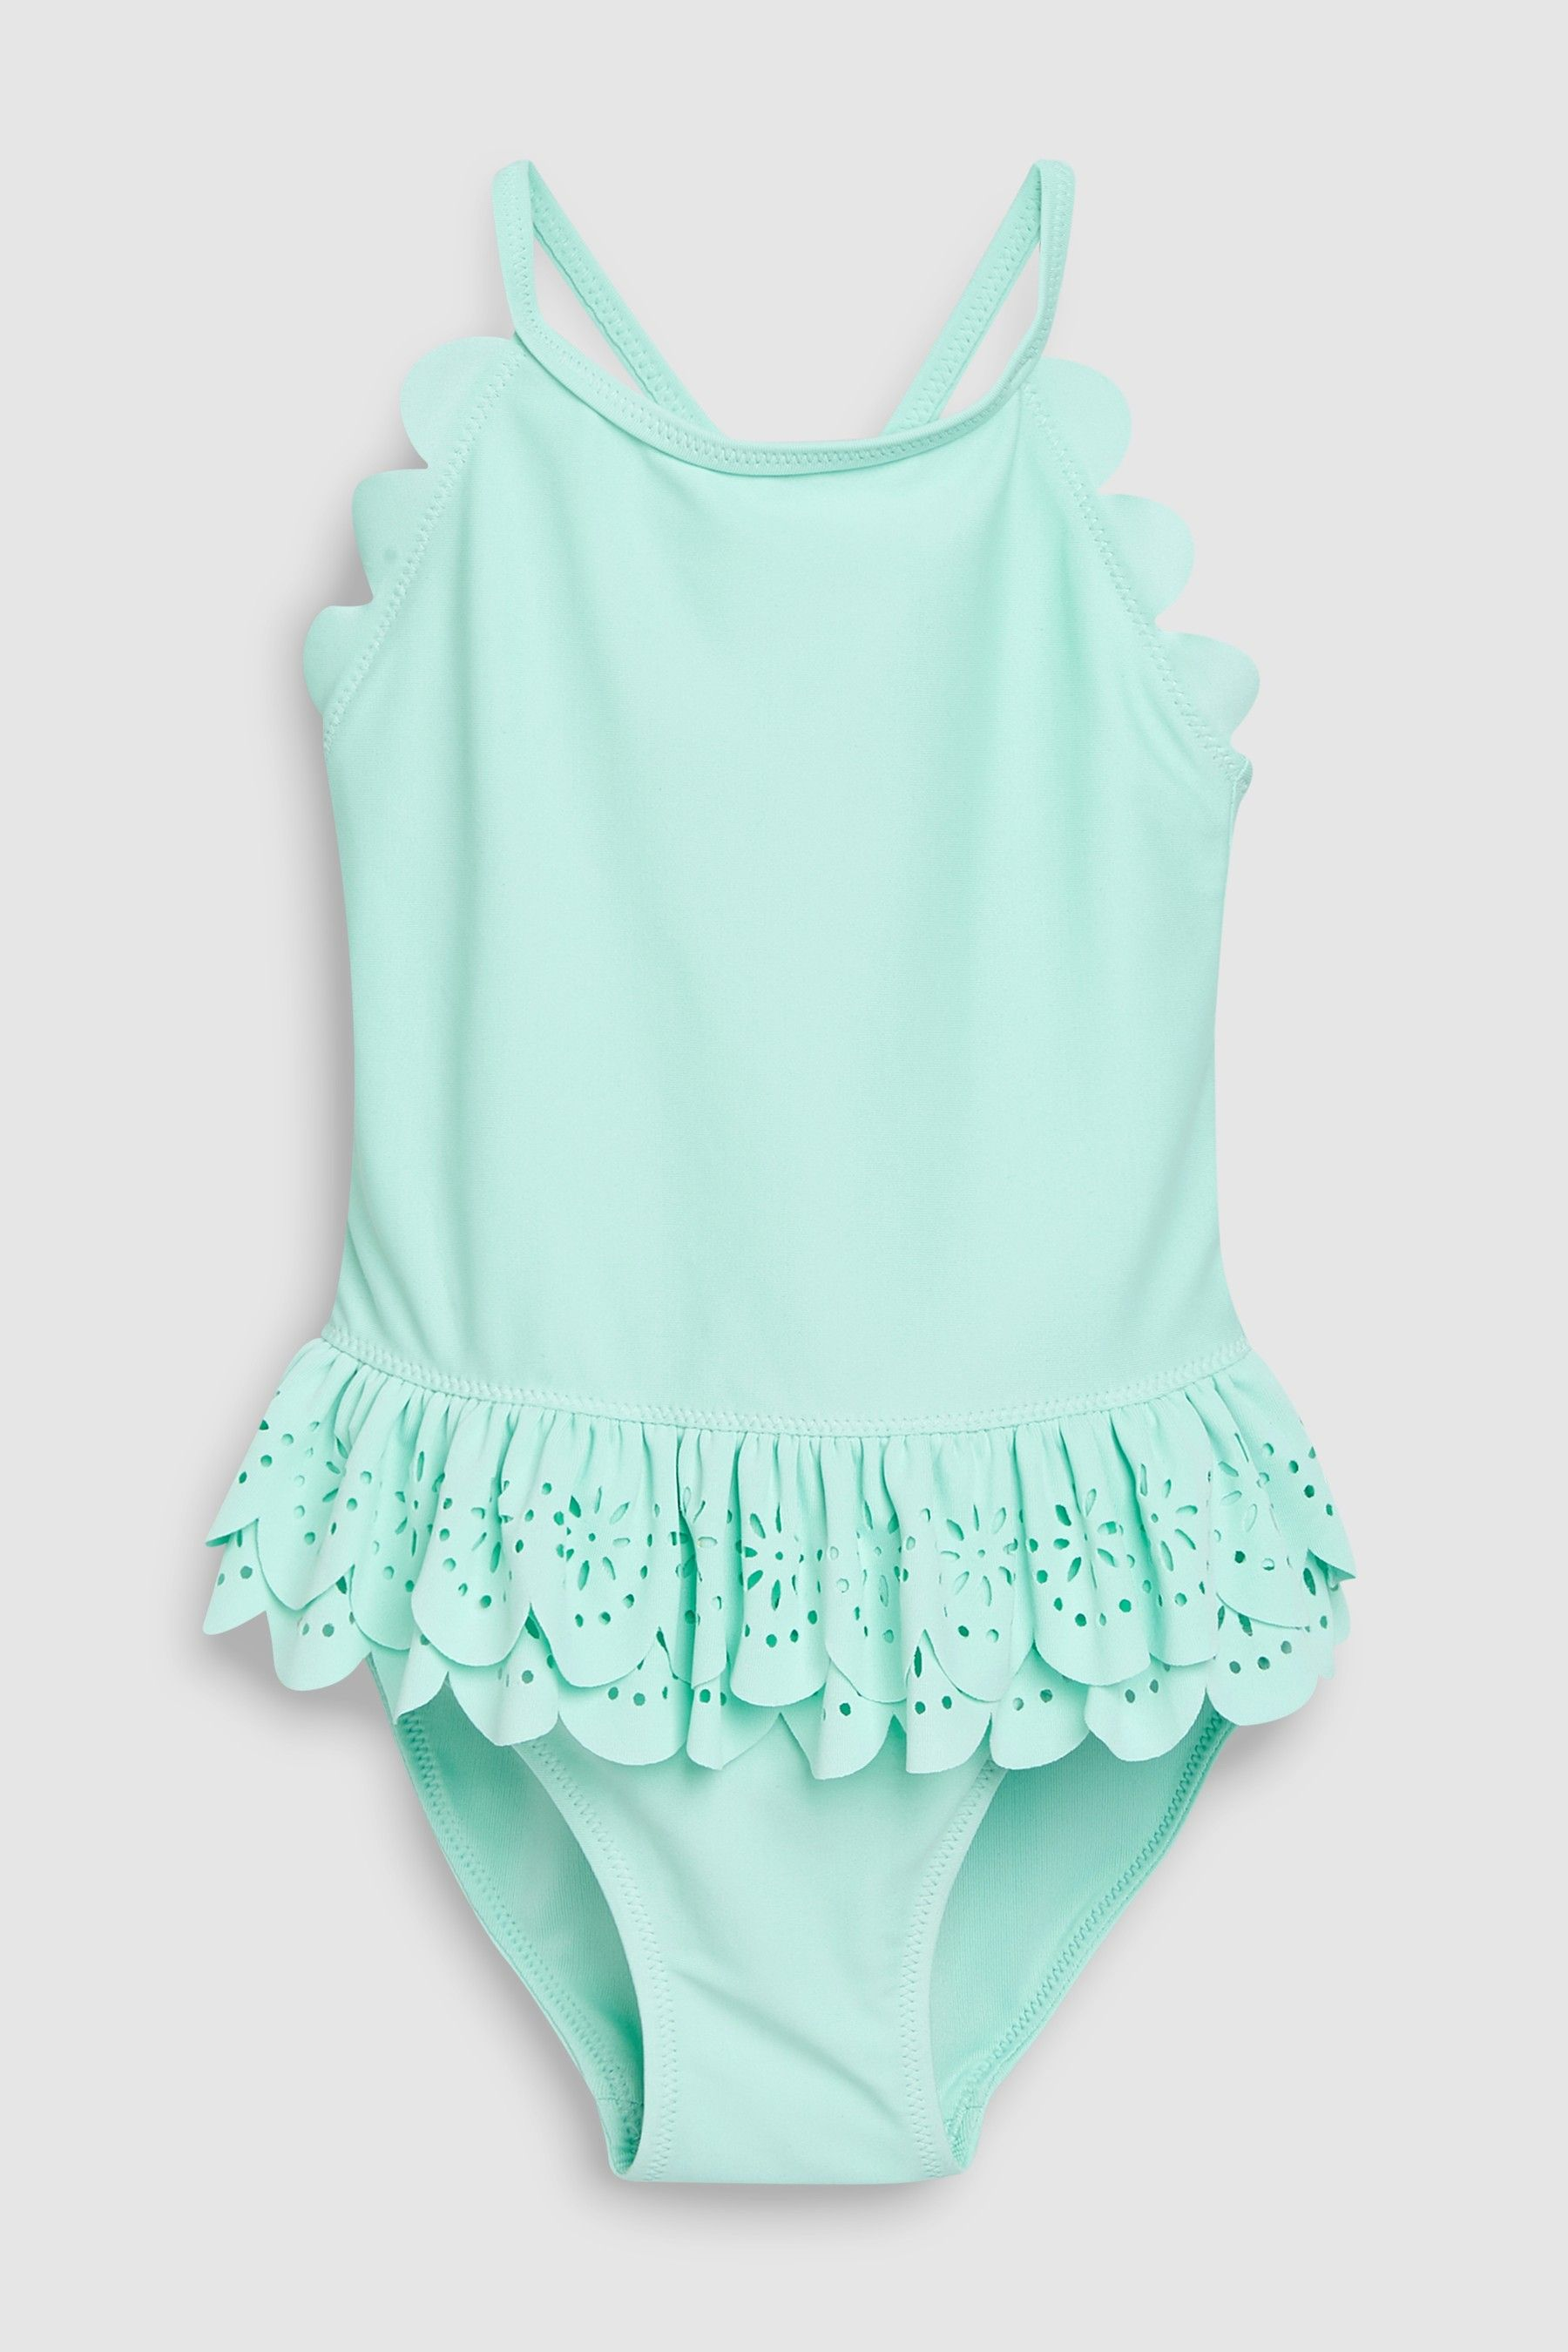 H2O Frilly Flower Girls and Babies Swimsuit